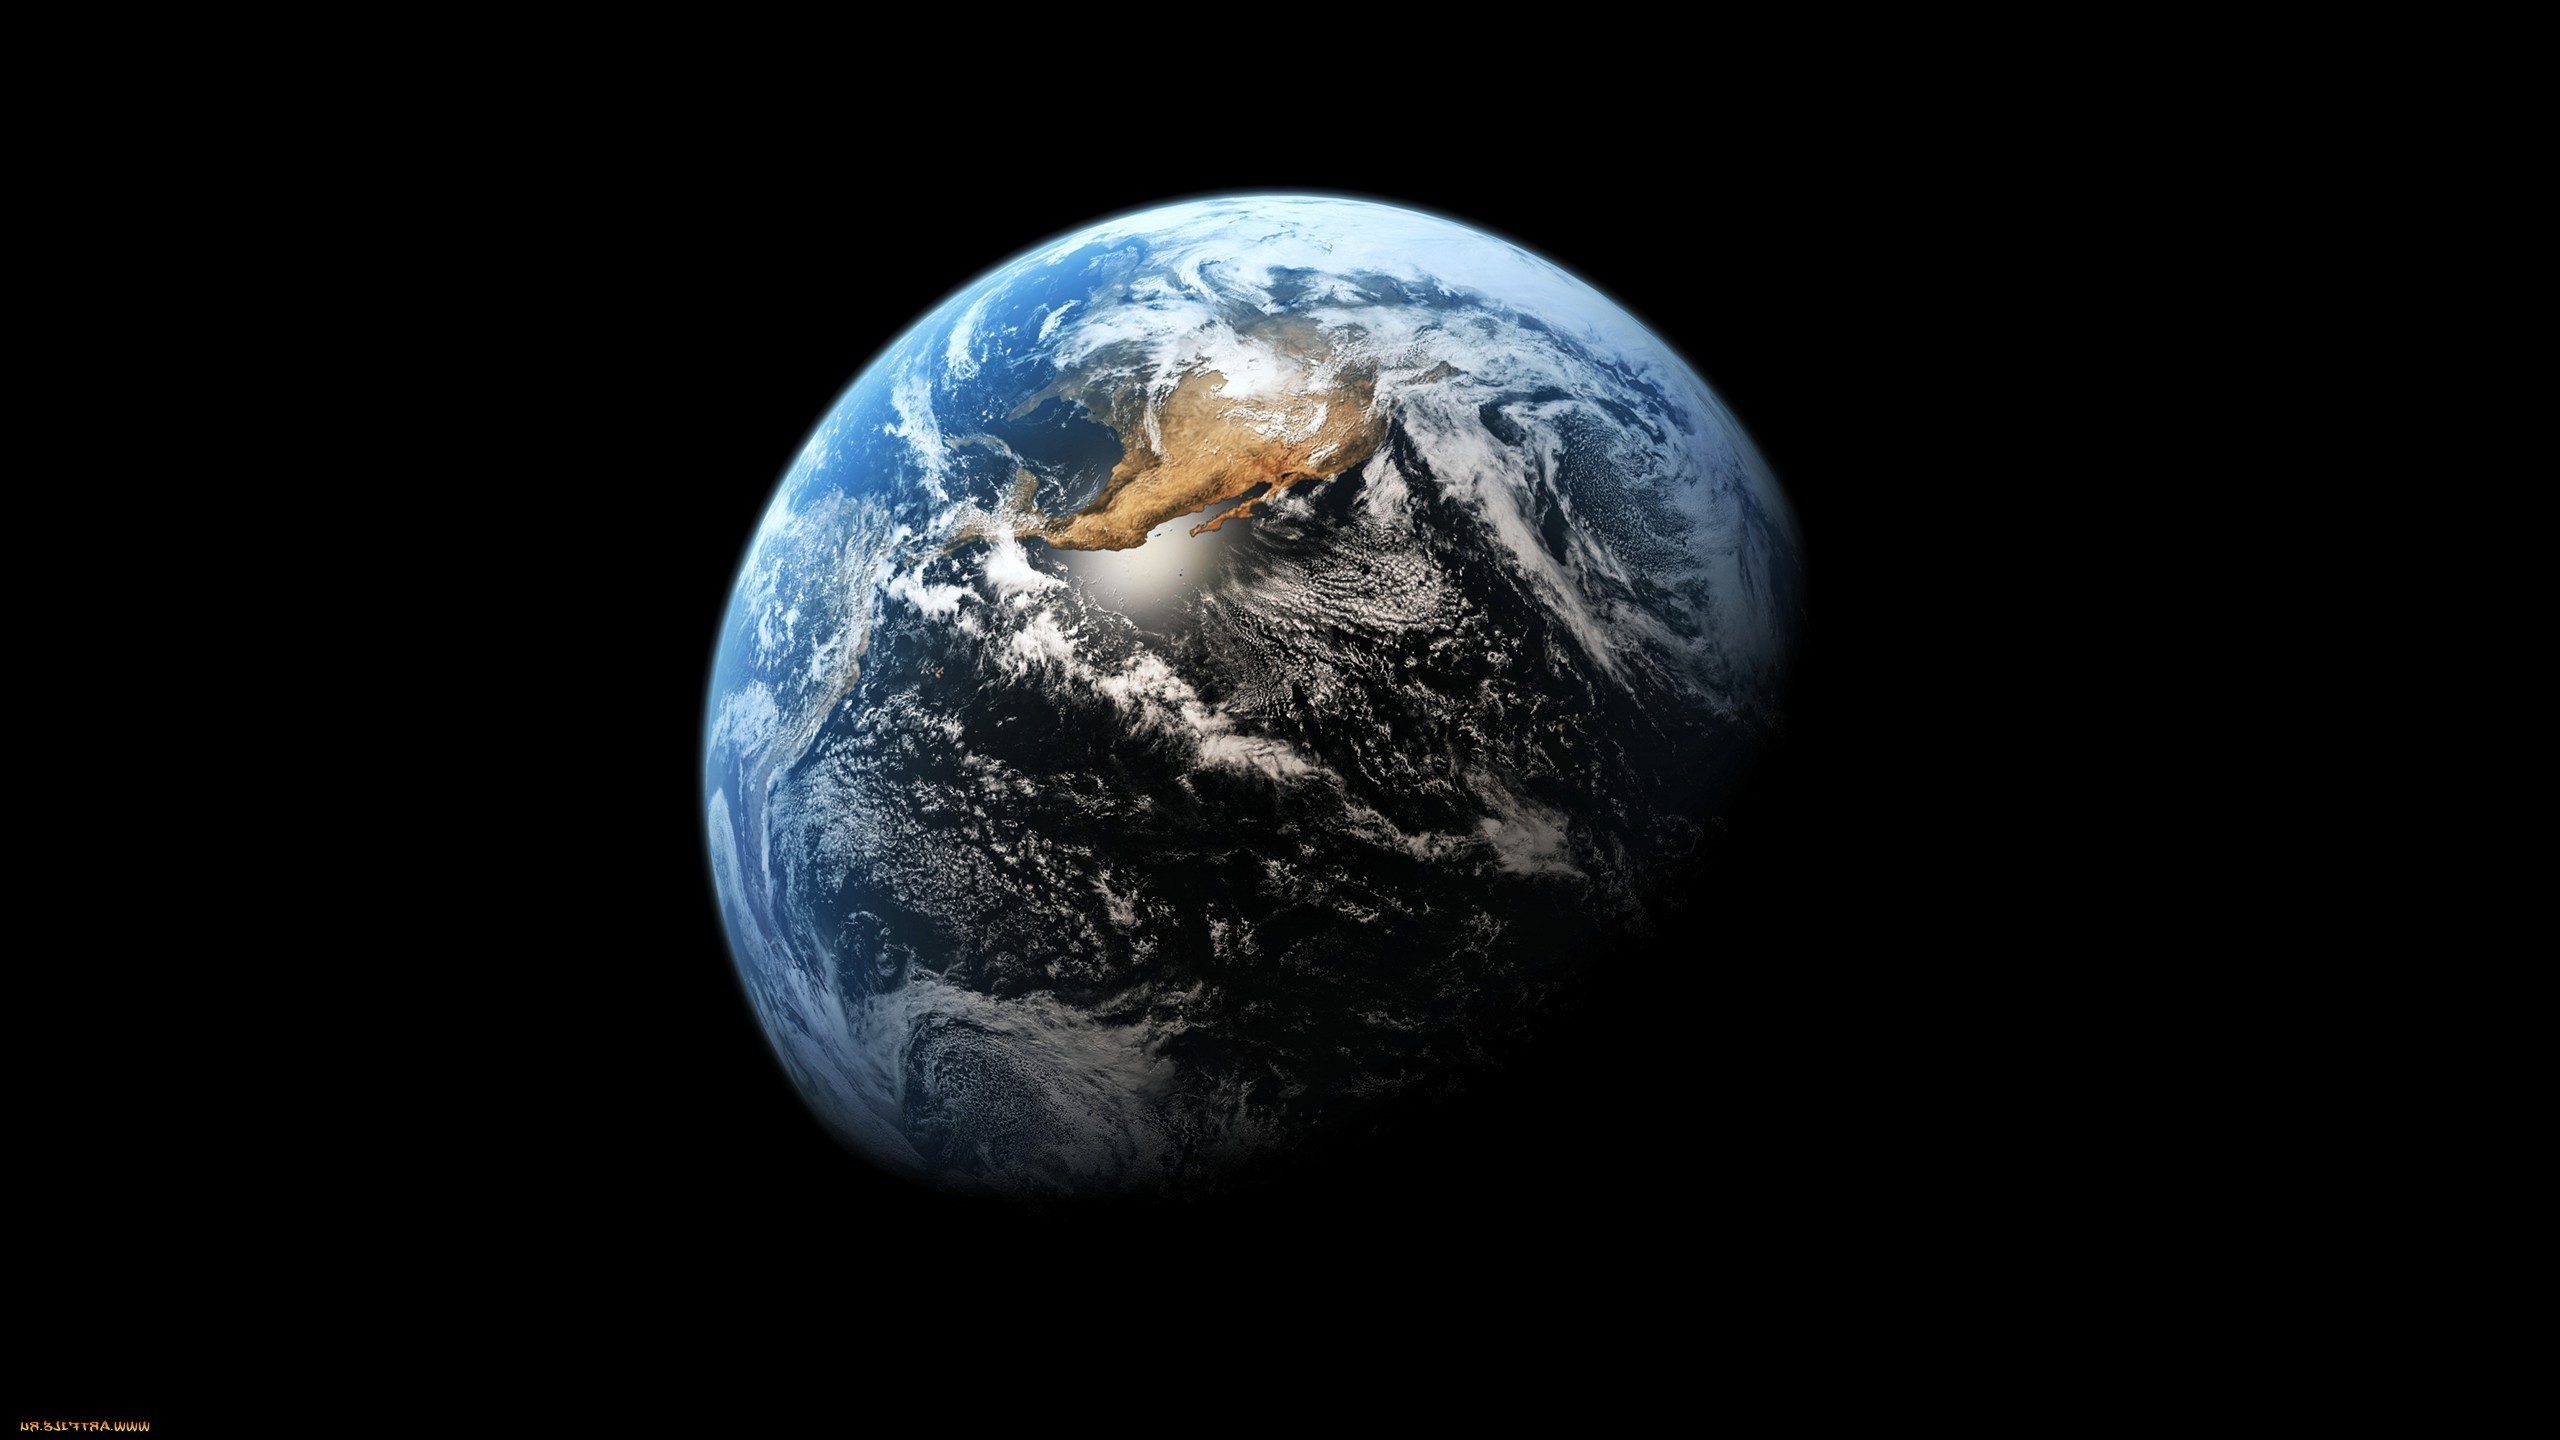 2560x1440 Earth Black Space Planet Wallpapers Hd Earth In Black Space 2560x1440 Wallpaper Teahub Io